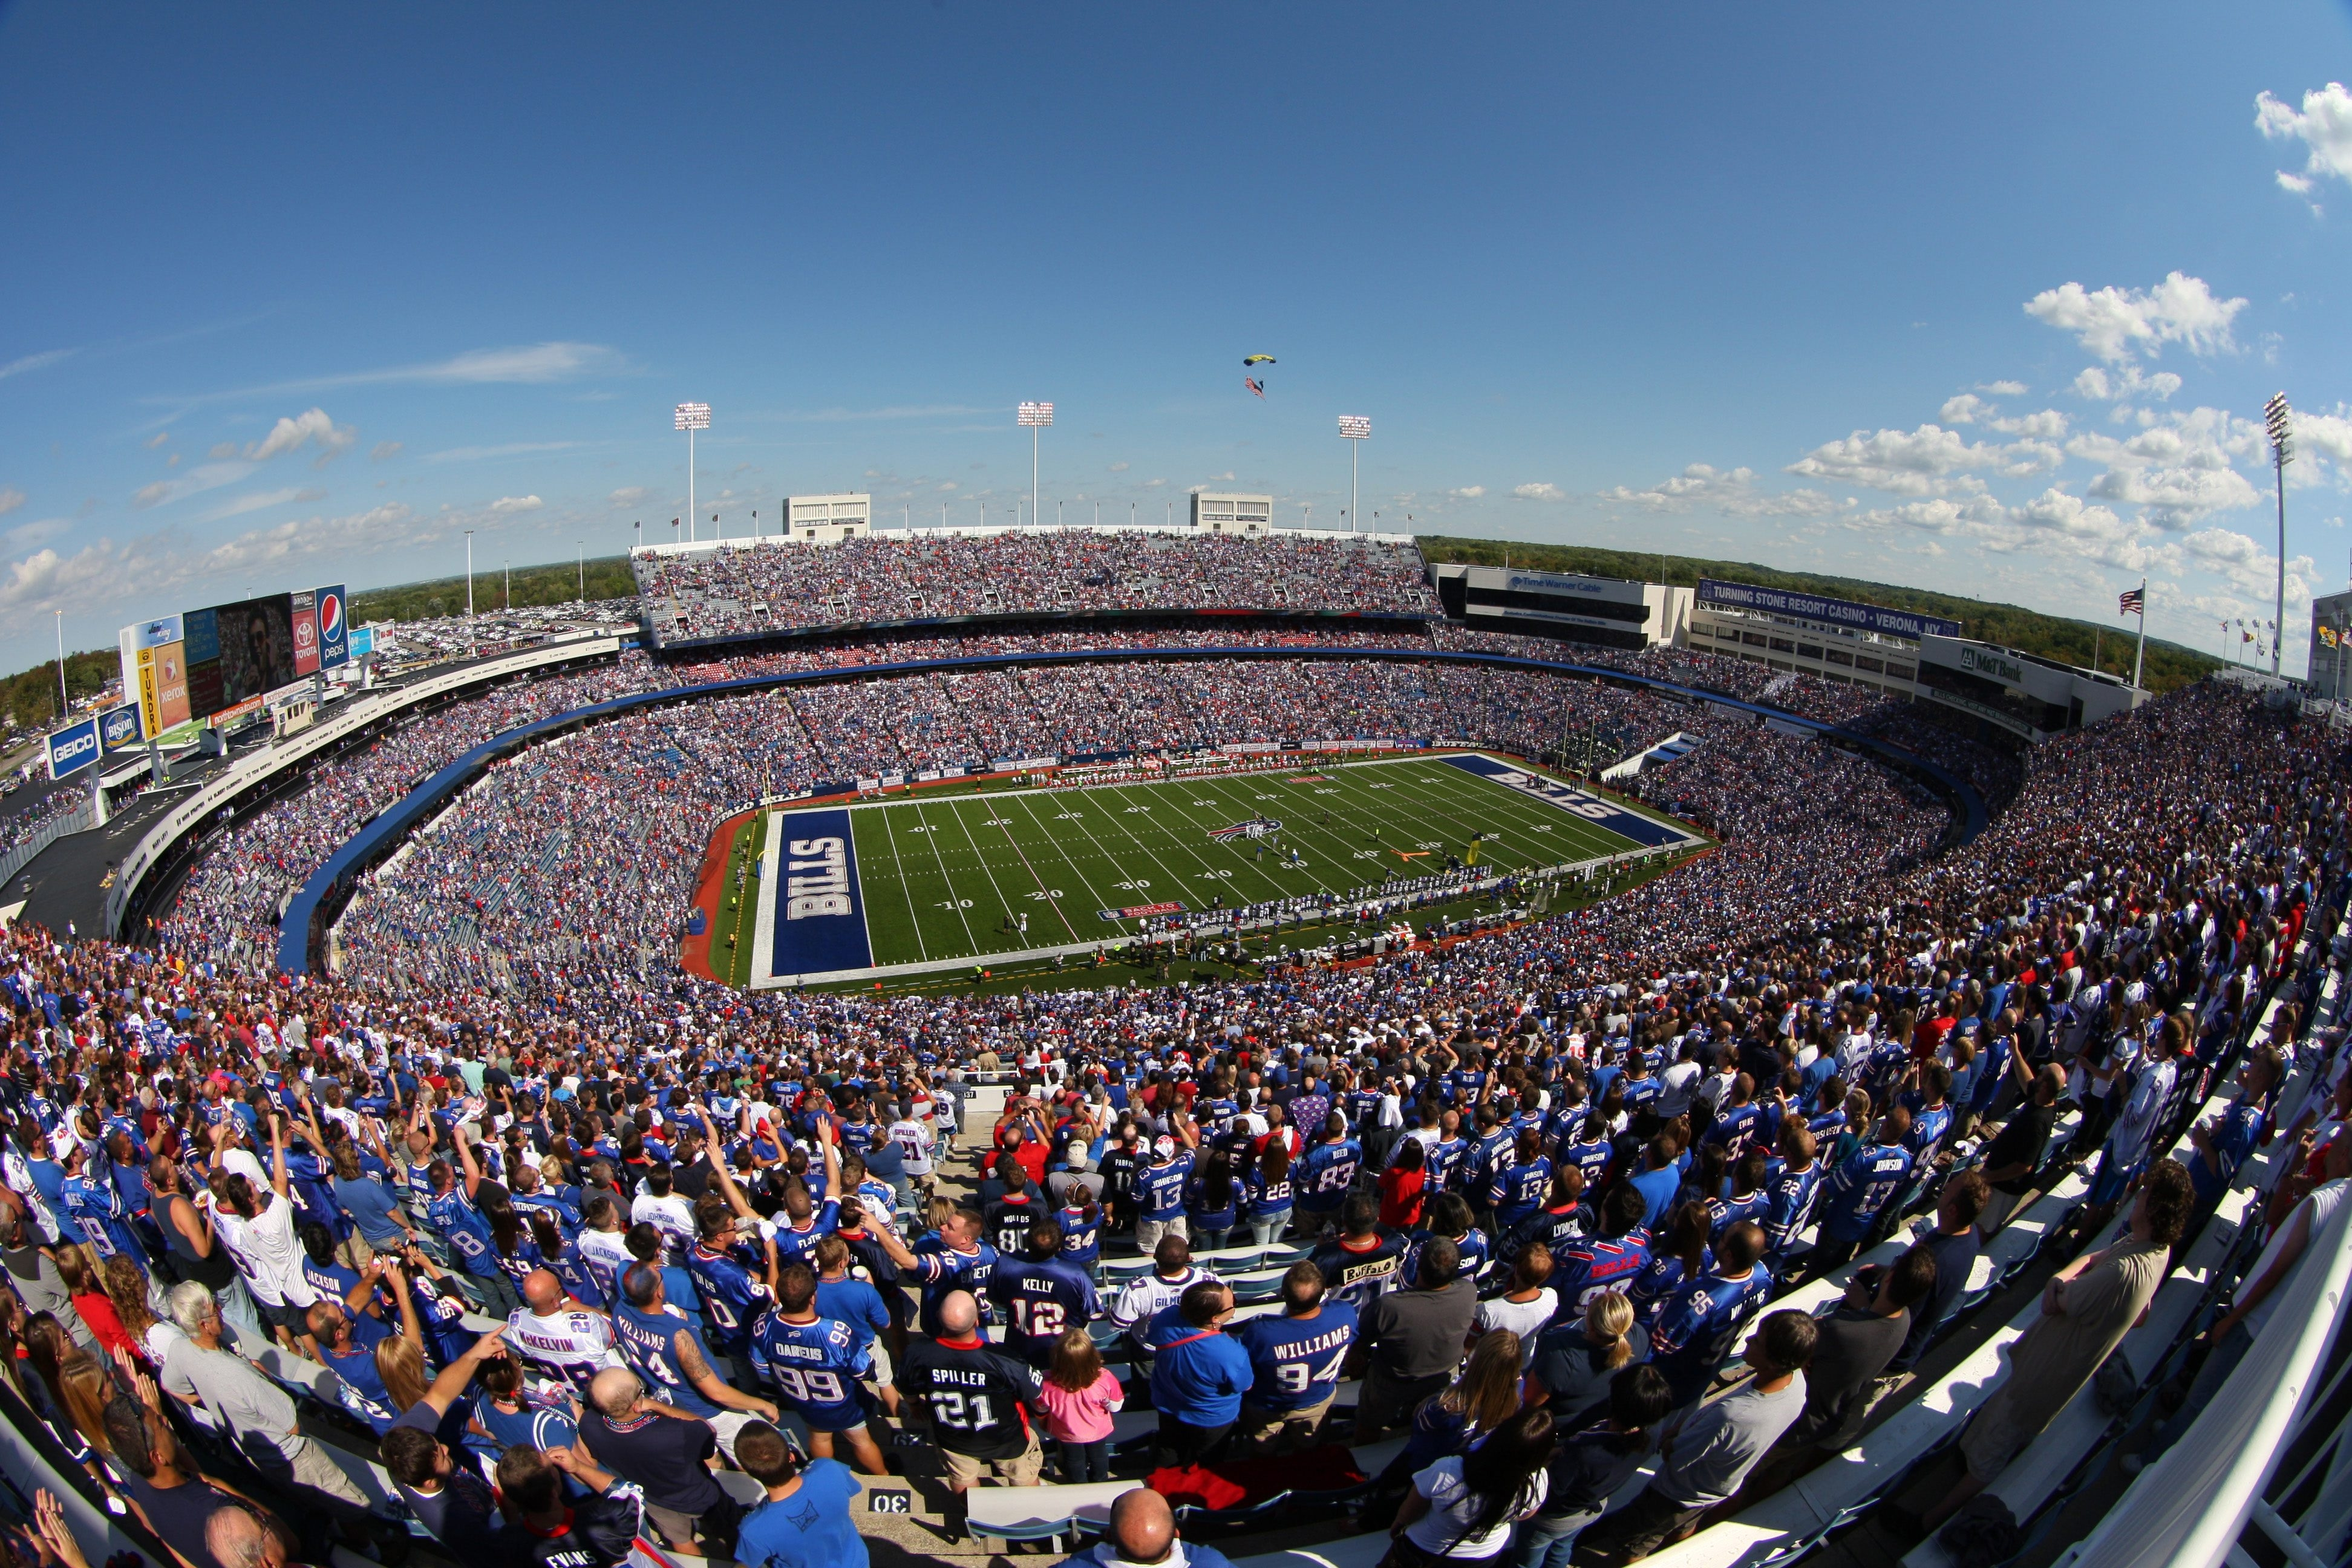 The study will also consider the costs of keeping the Buffalo Bills' current home, Ralph Wilson Stadium.